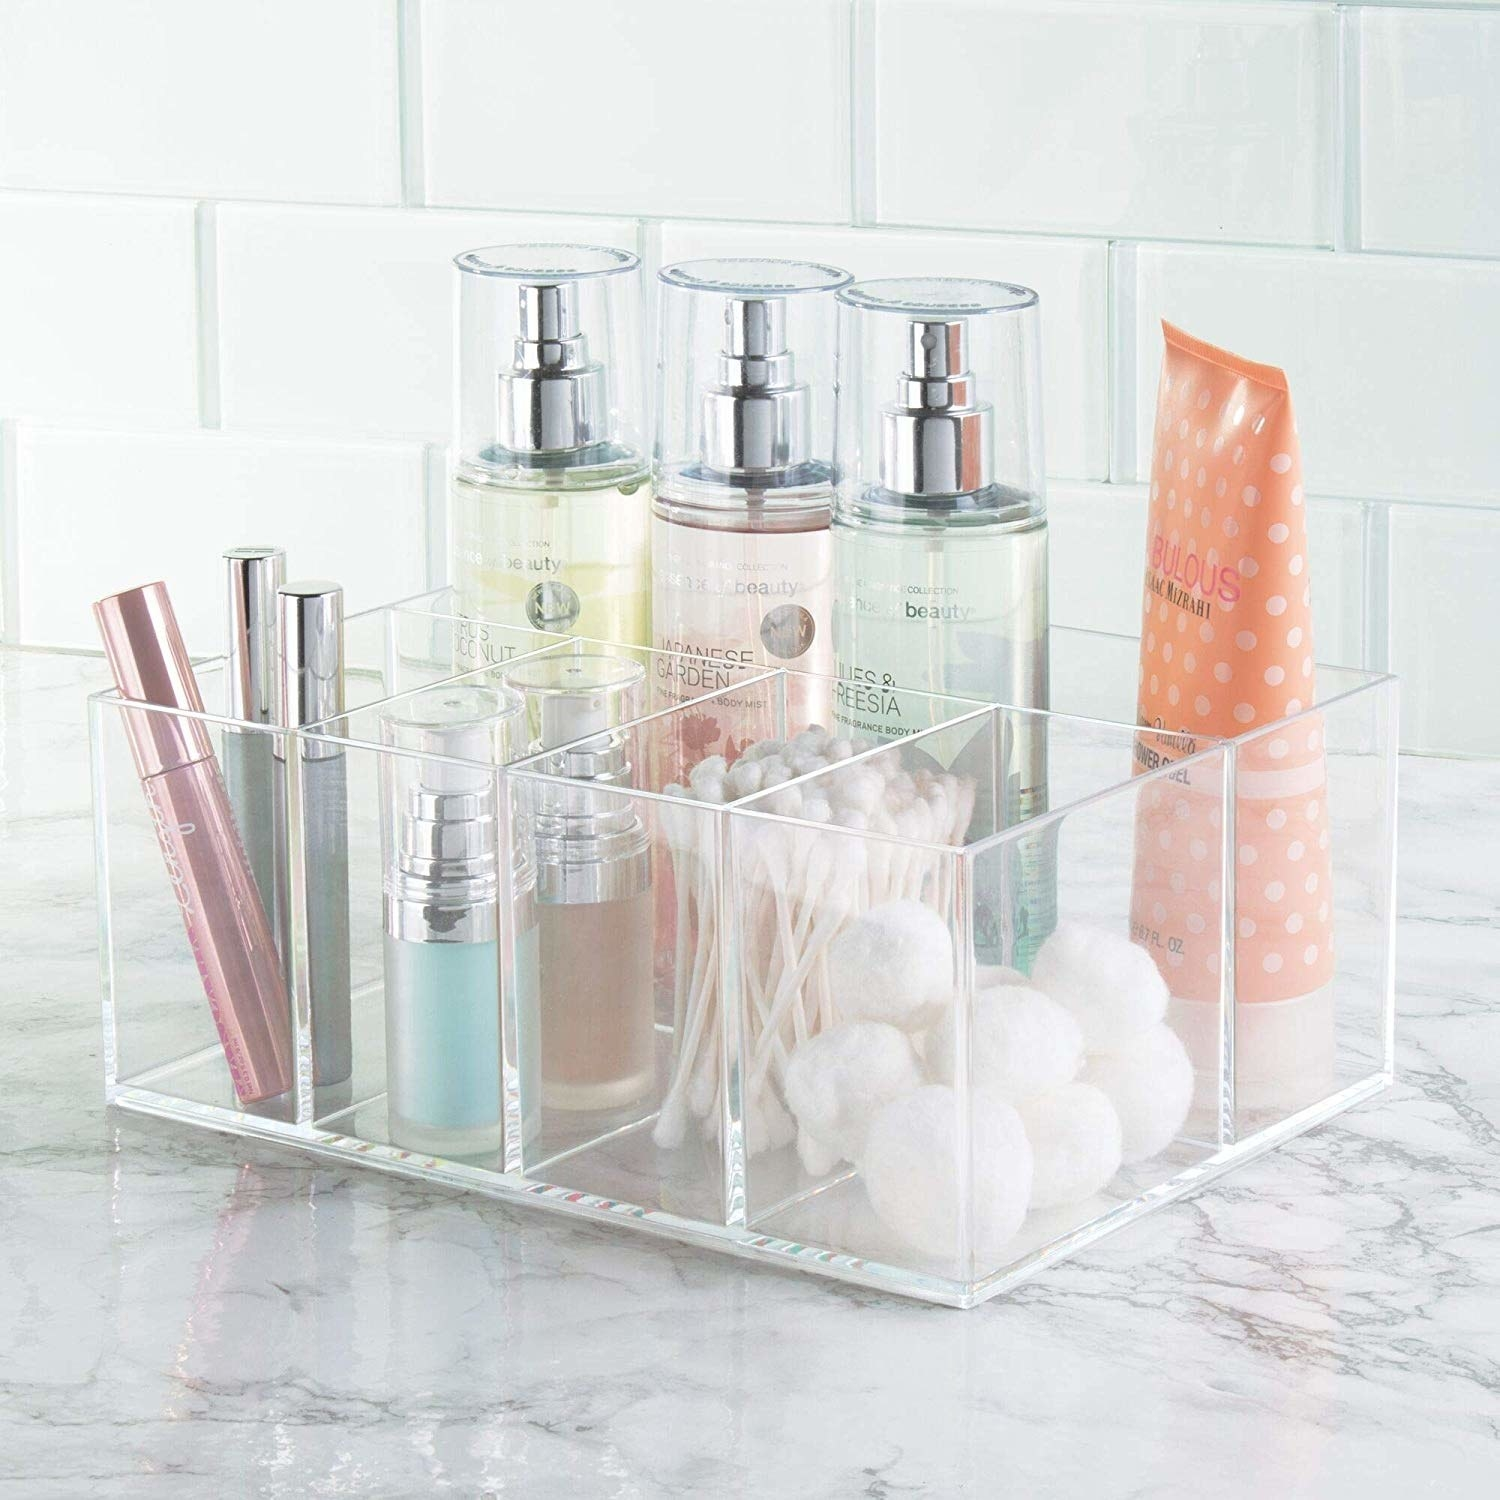 A close up of the organizer filled with neatly arranged cosmetics and beauty products